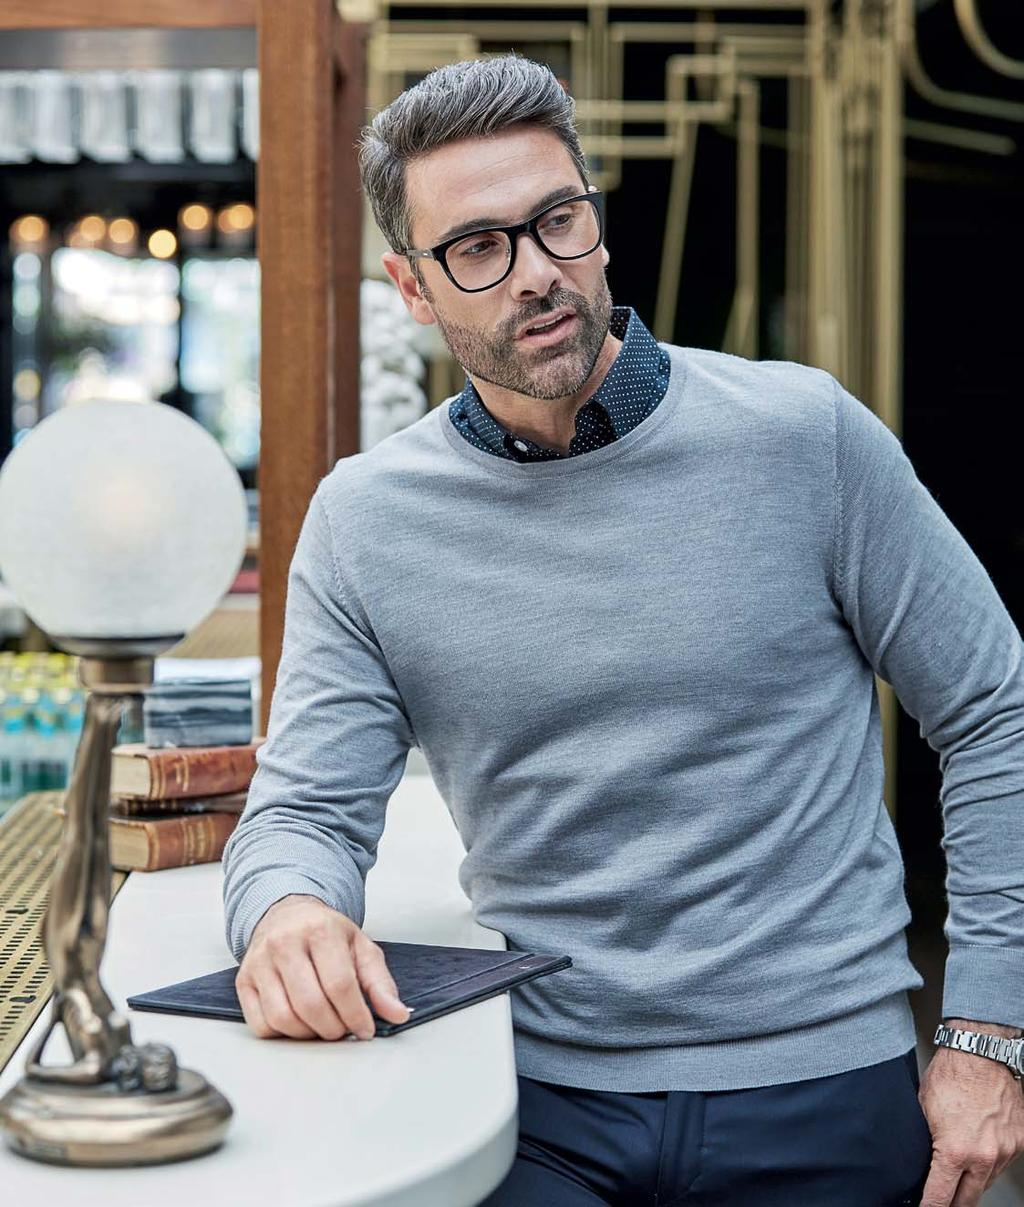 TJ6000 6000 50% Wolle / 50% Polyacryl Mens Crew Neck Sweater DARK GREY (SOLID) LIGHT GREY NAVY Tee Jays Fully fashion Tailor Fit Qualität Italienisches Merino-Acryl